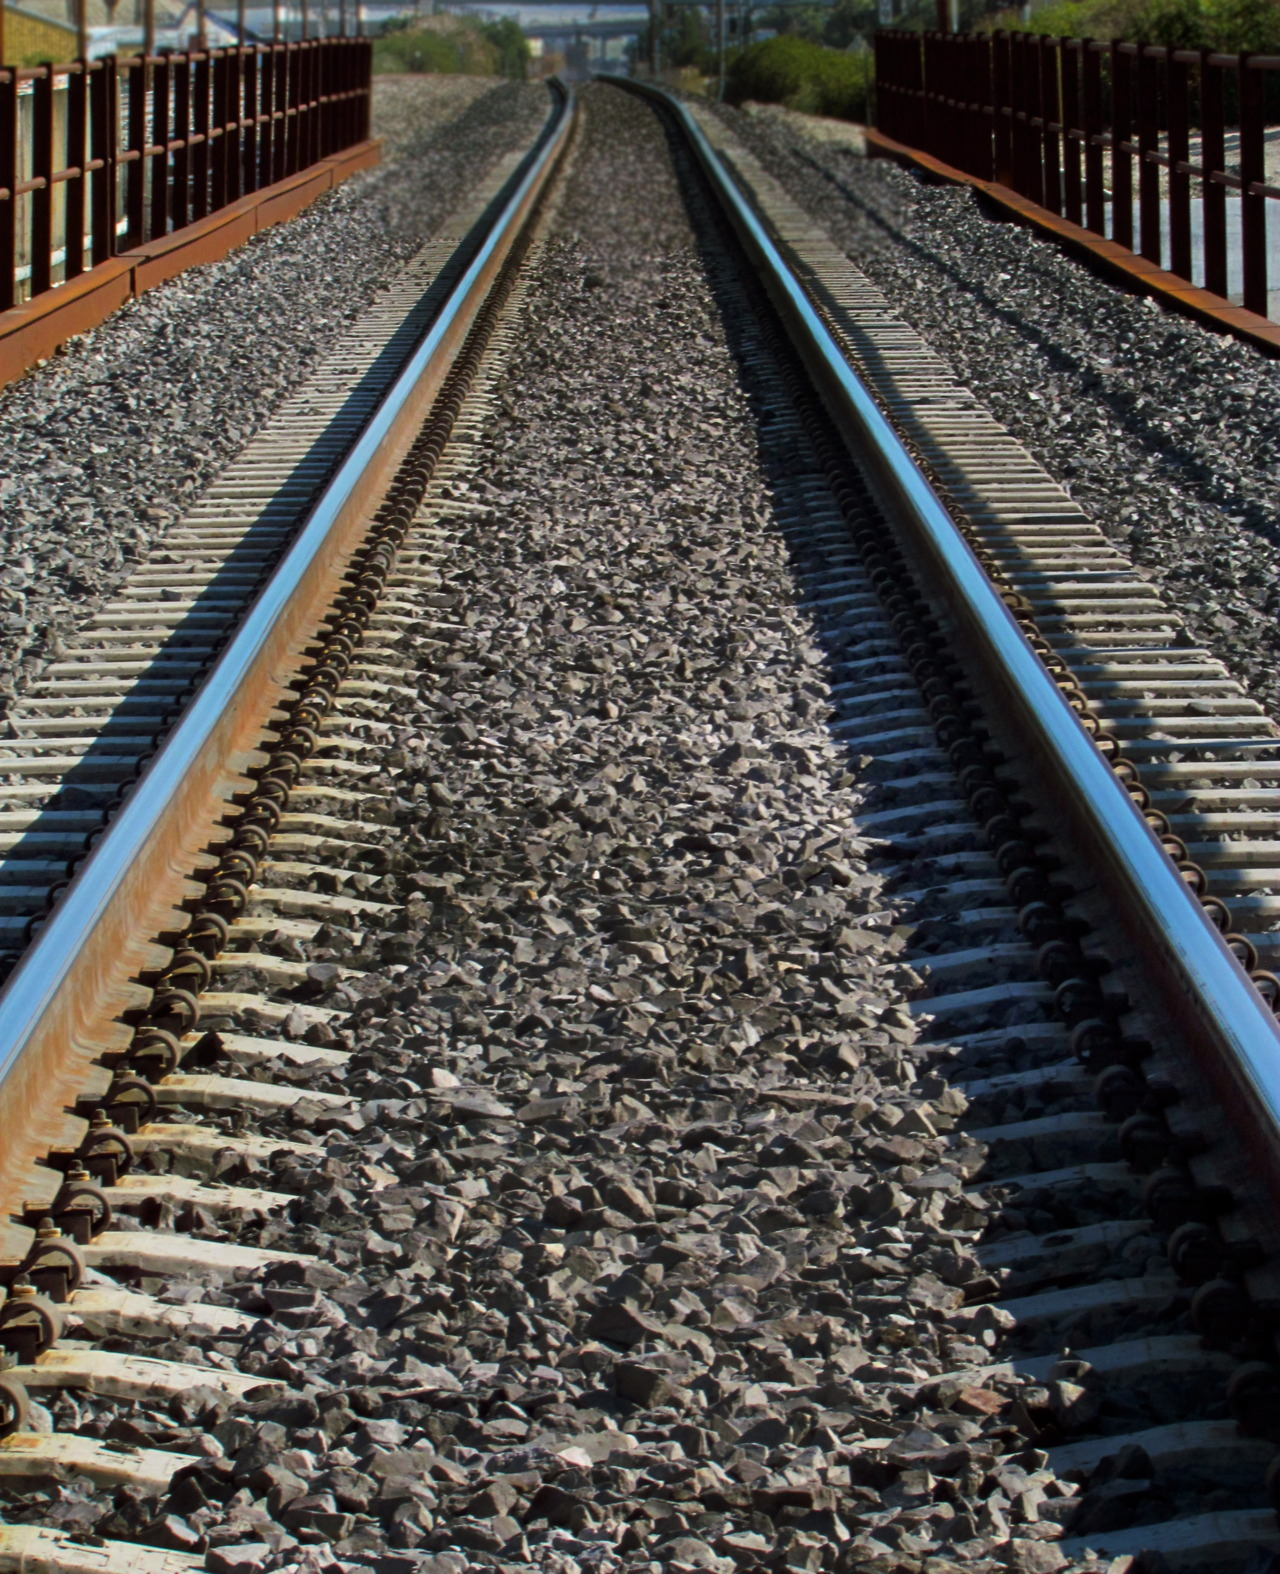 i love how this came out, i was walking on the train tracks.